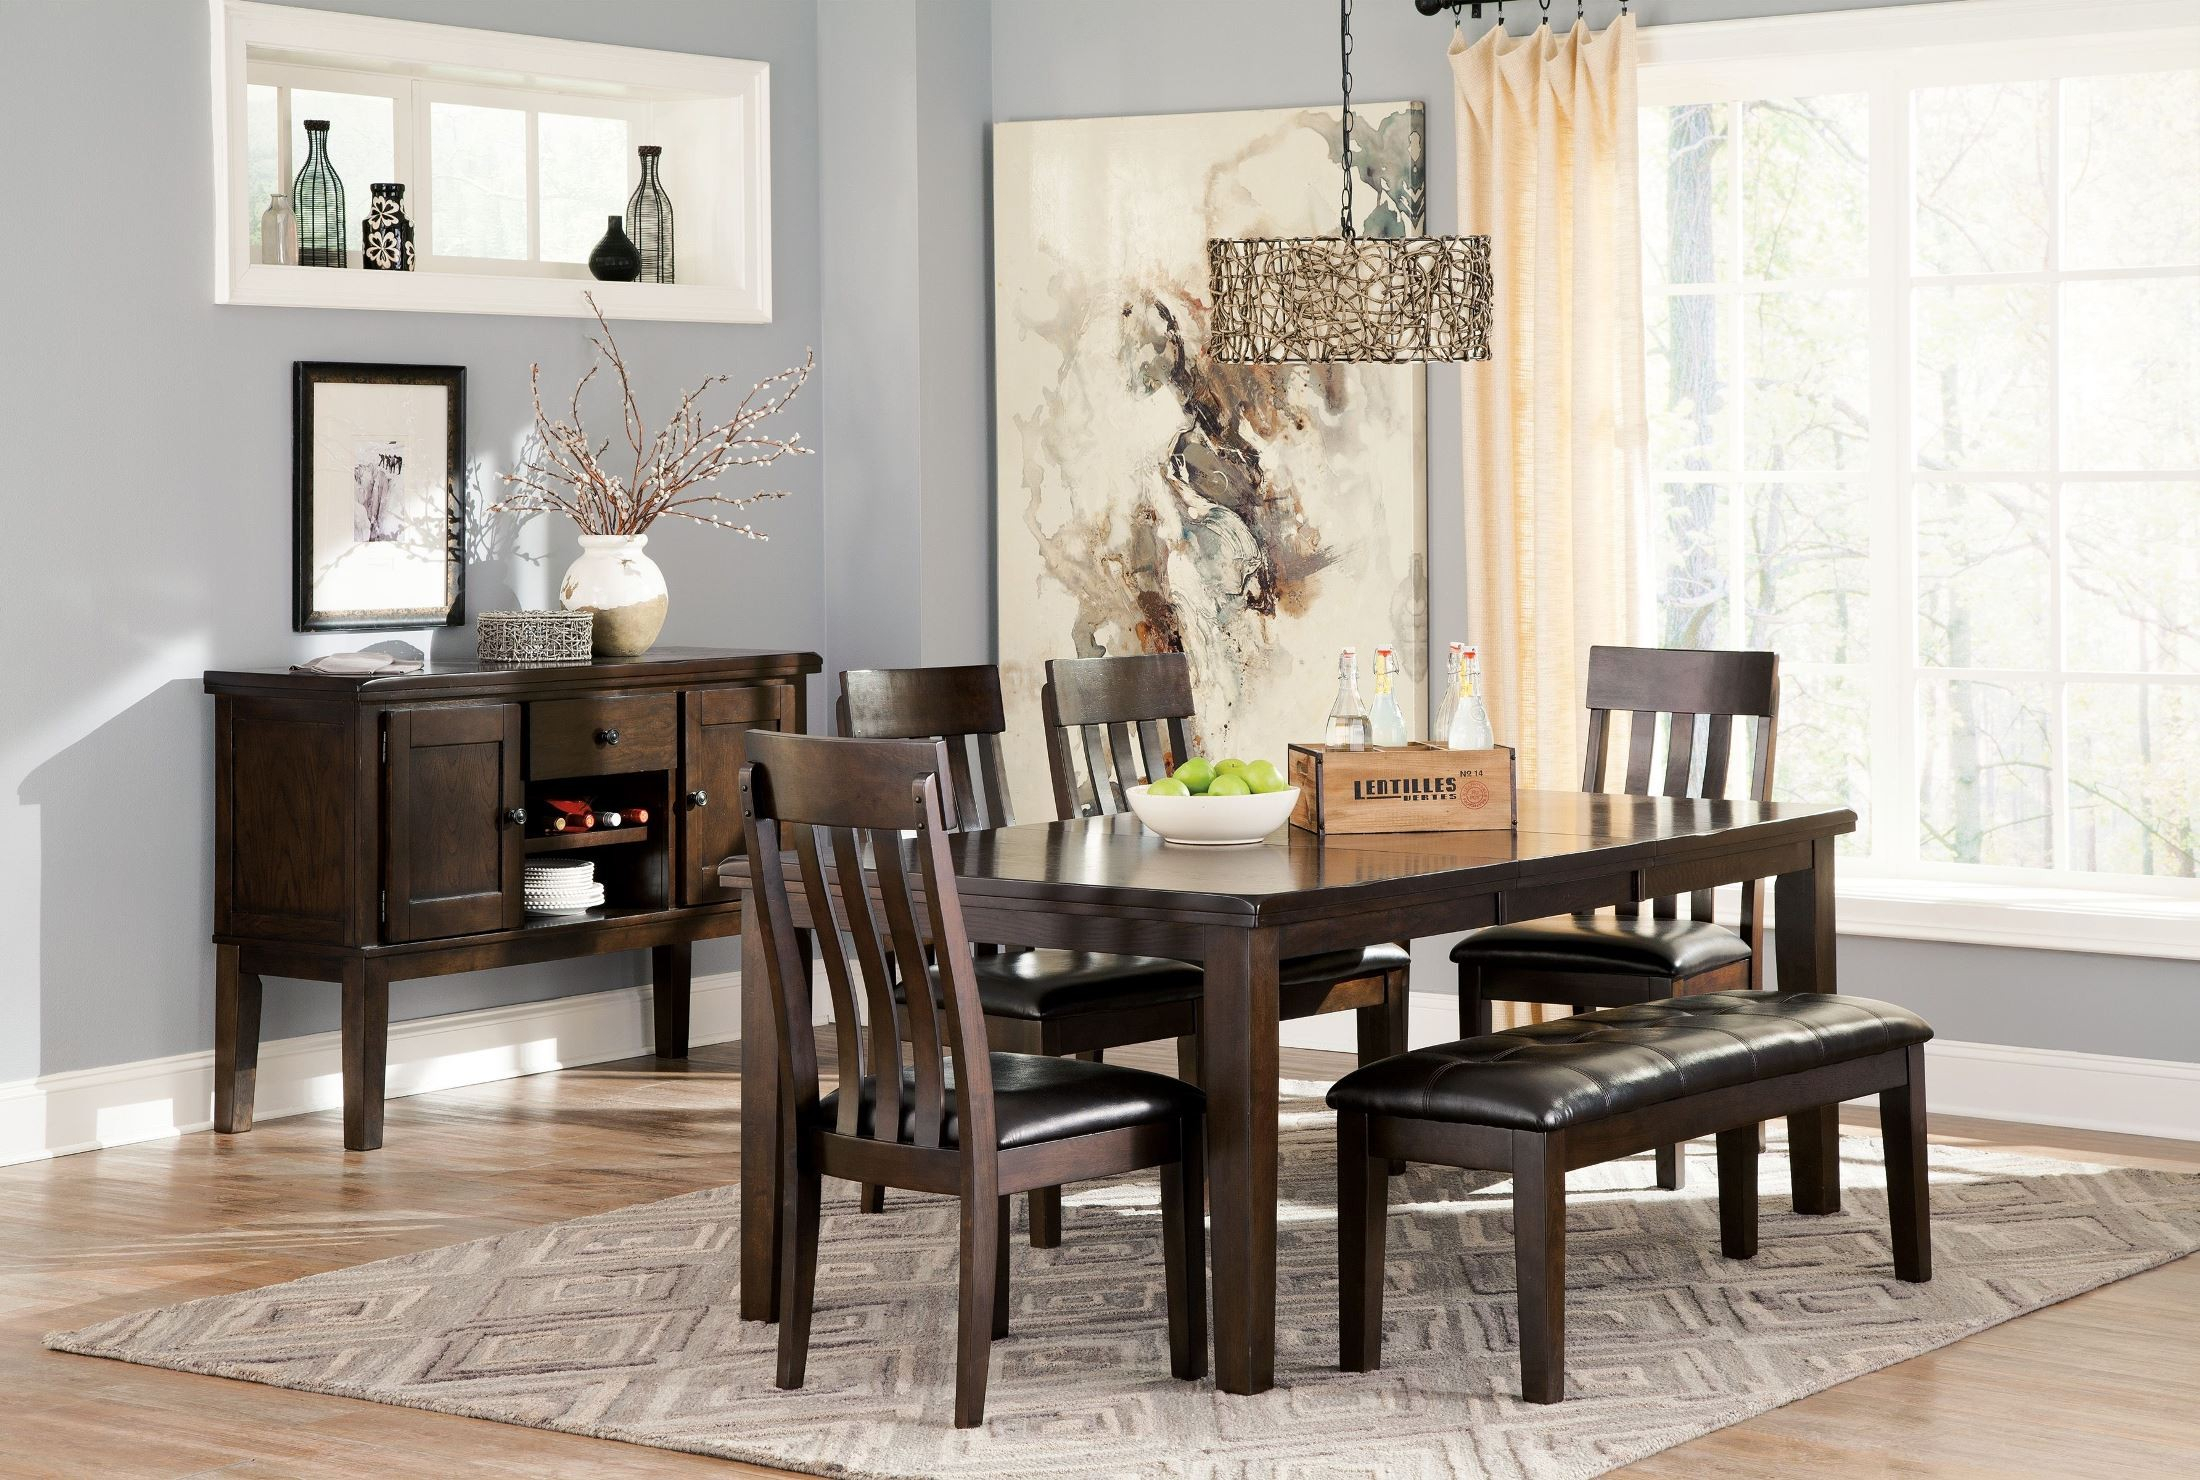 Haddigan Dark Brown Rectangular Extendable Dining Table Intended For Most Recently Released Benji 35'' Dining Tables (View 12 of 15)